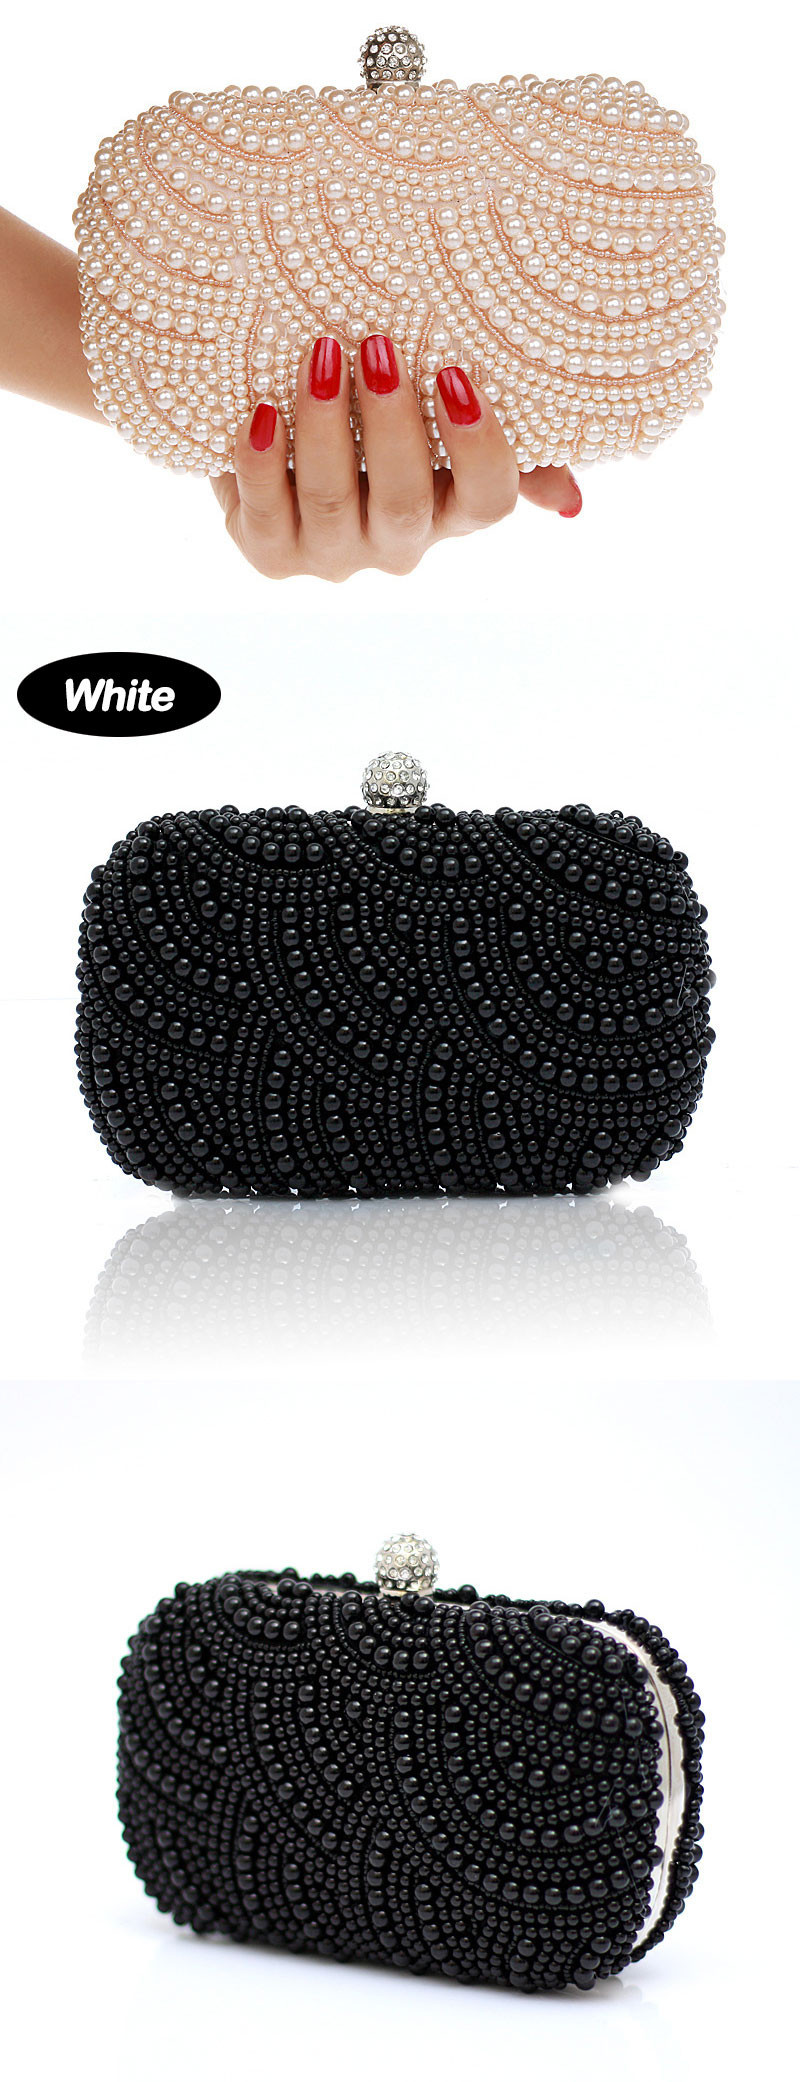 2016 Hot Fashion Women Beaded Rhinestone Flap Handbags Hard Box Ladies Beading Party Clutch Bags Small Shoulder Messenger Bags